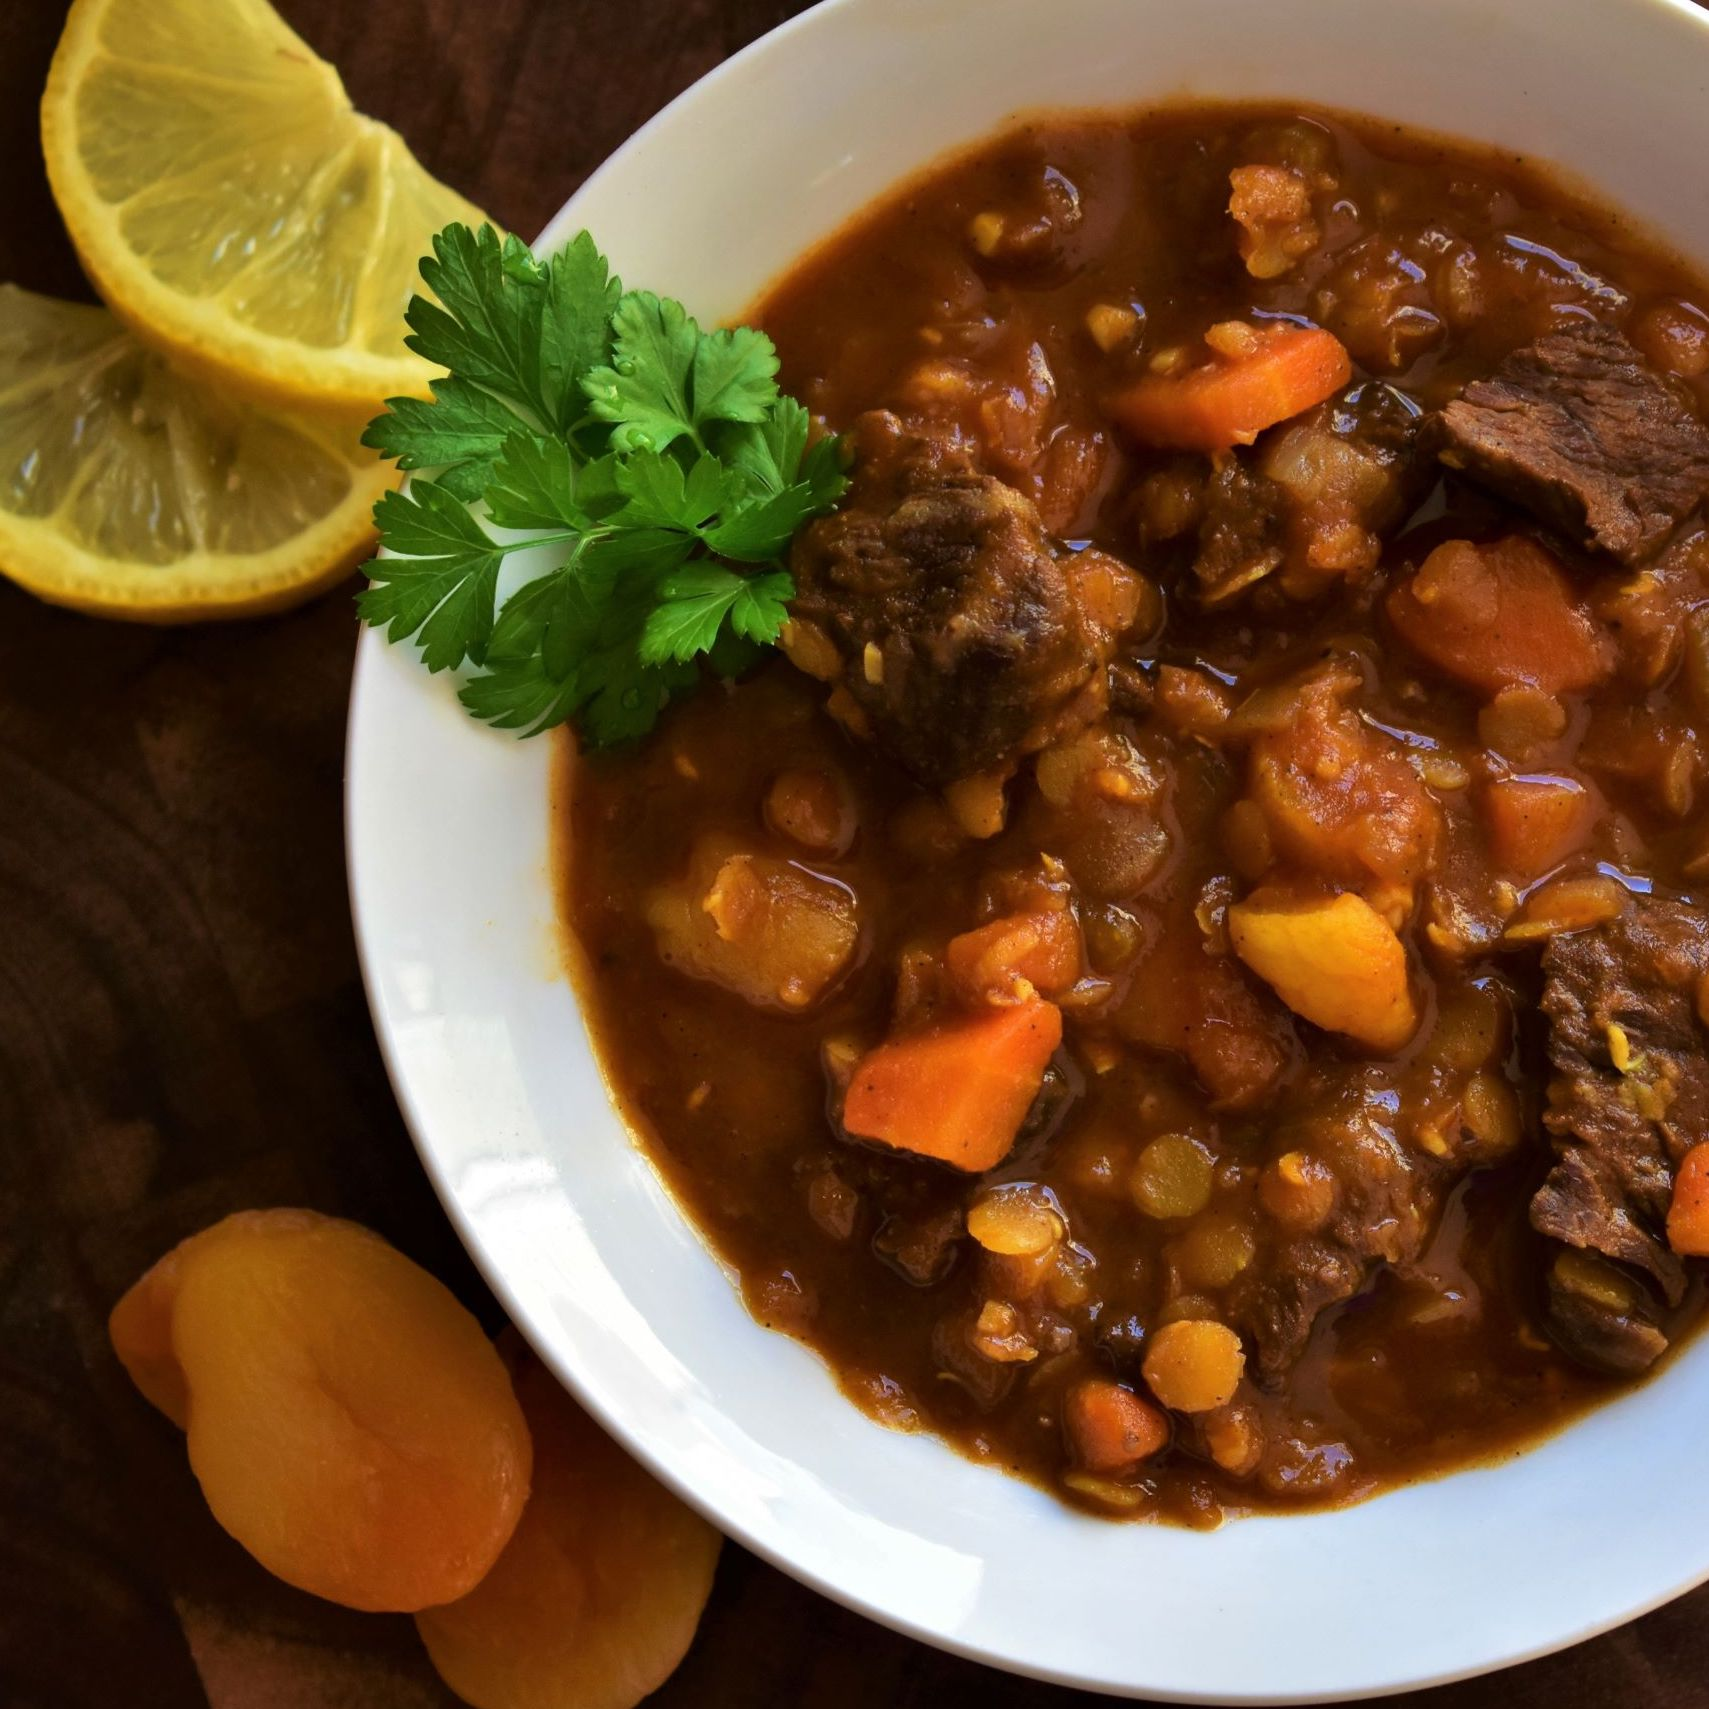 Moroccan Beef and Lentil Stew